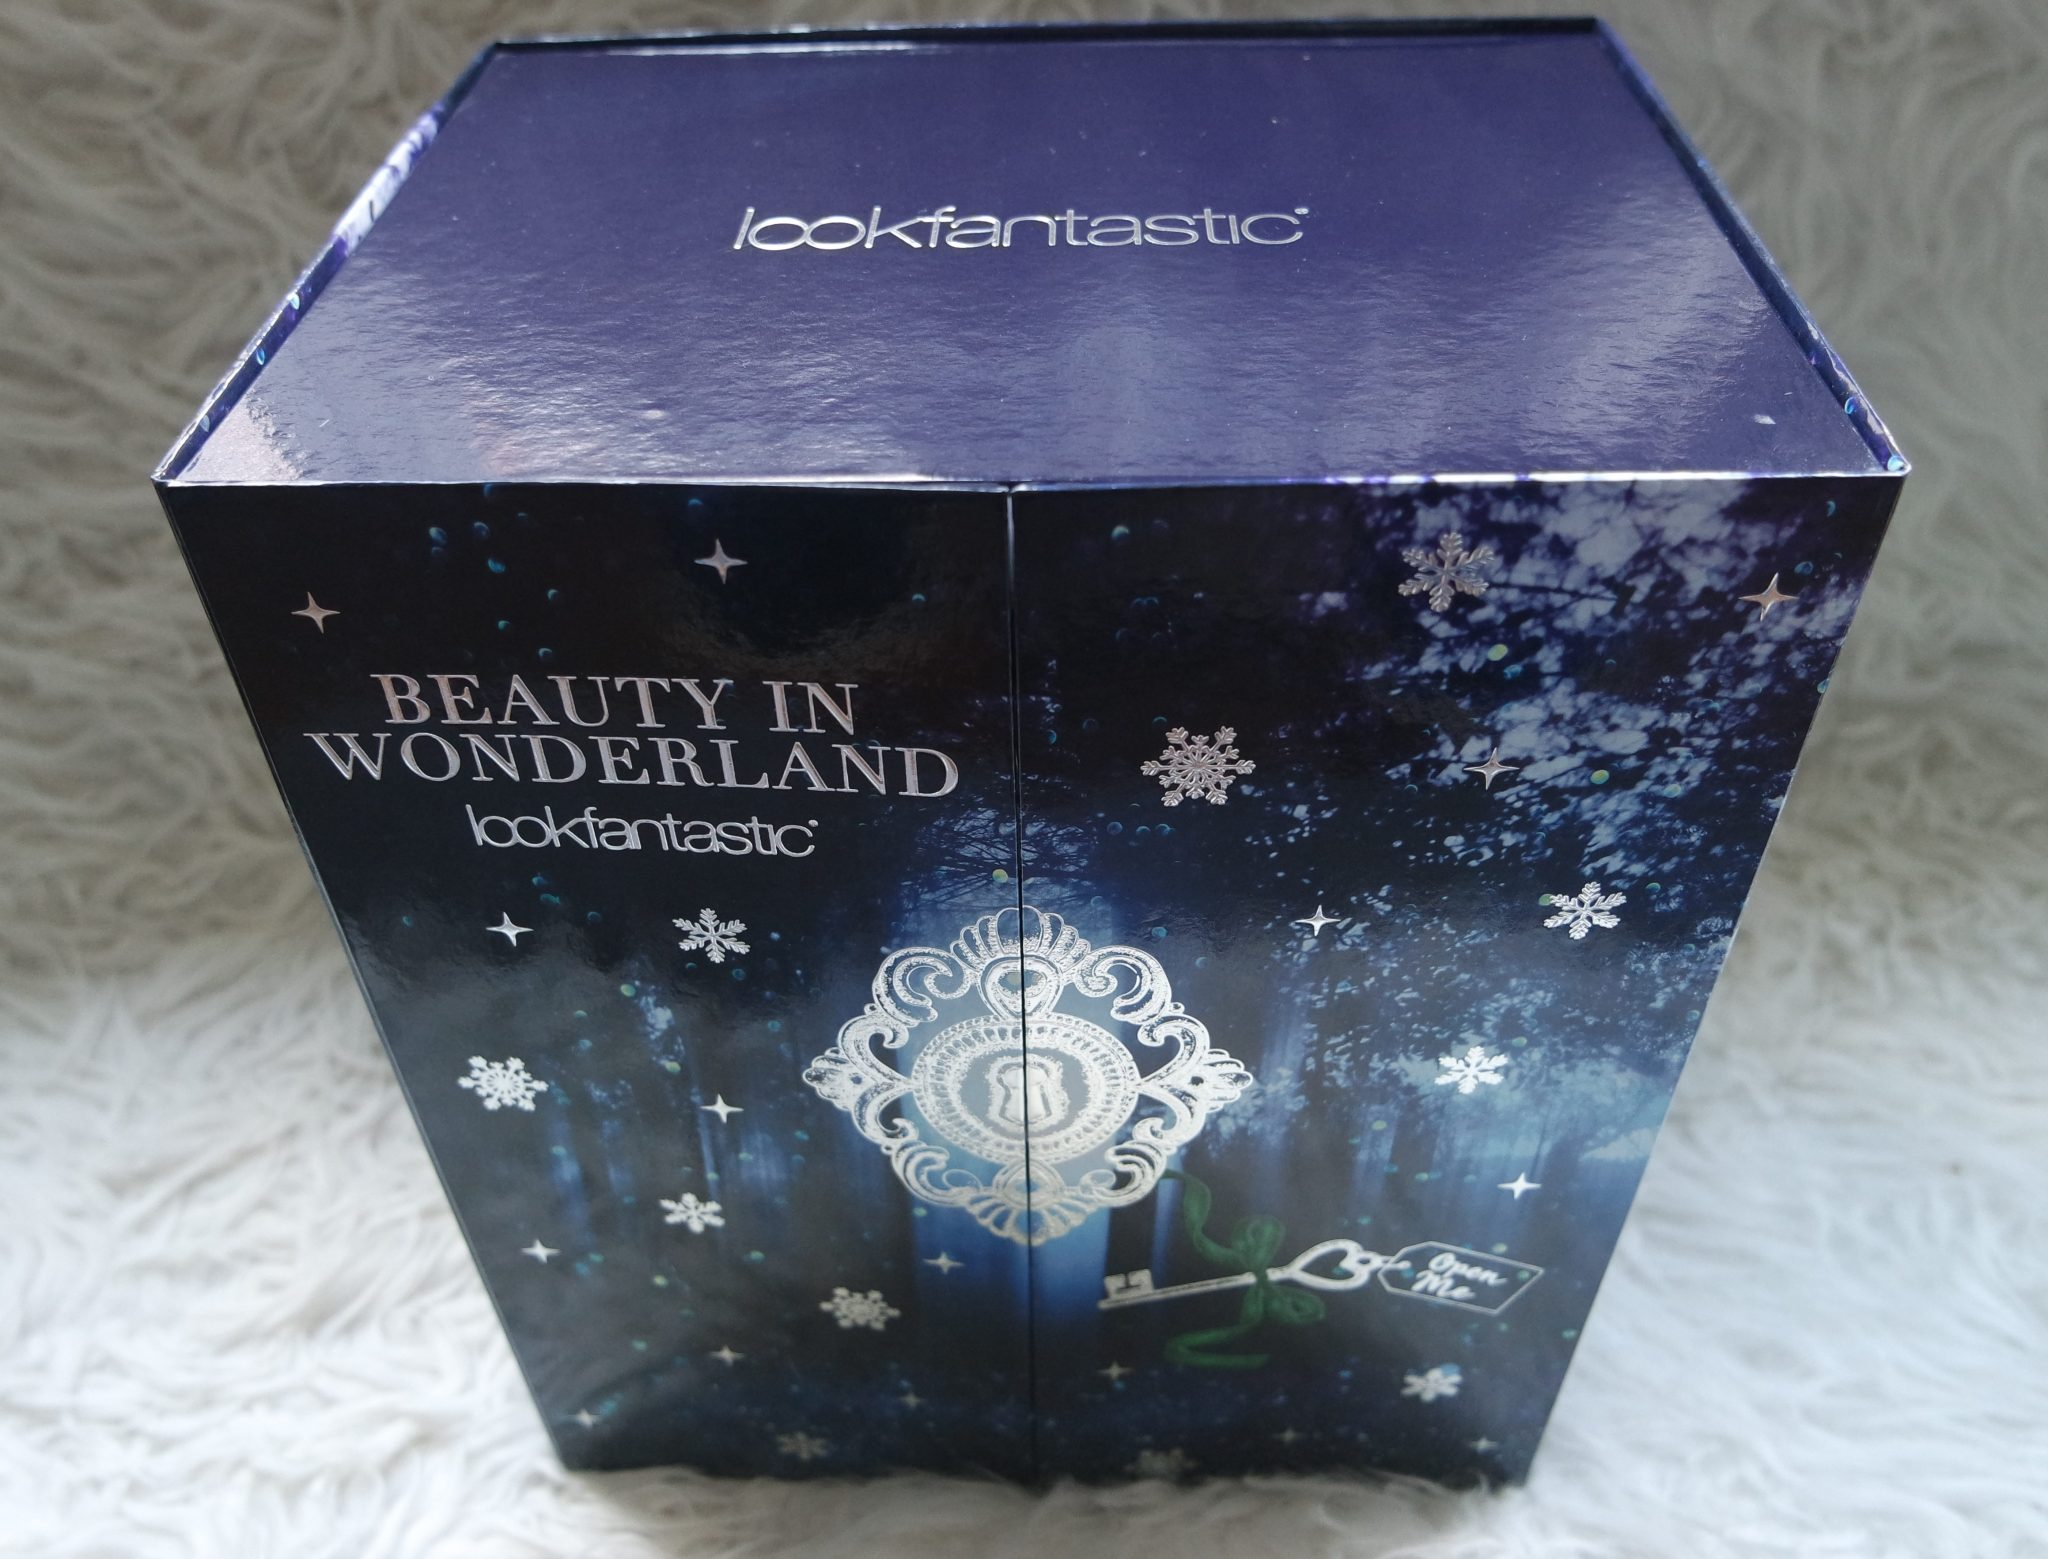 lookfantastic adventkalender 2017 unboxing review